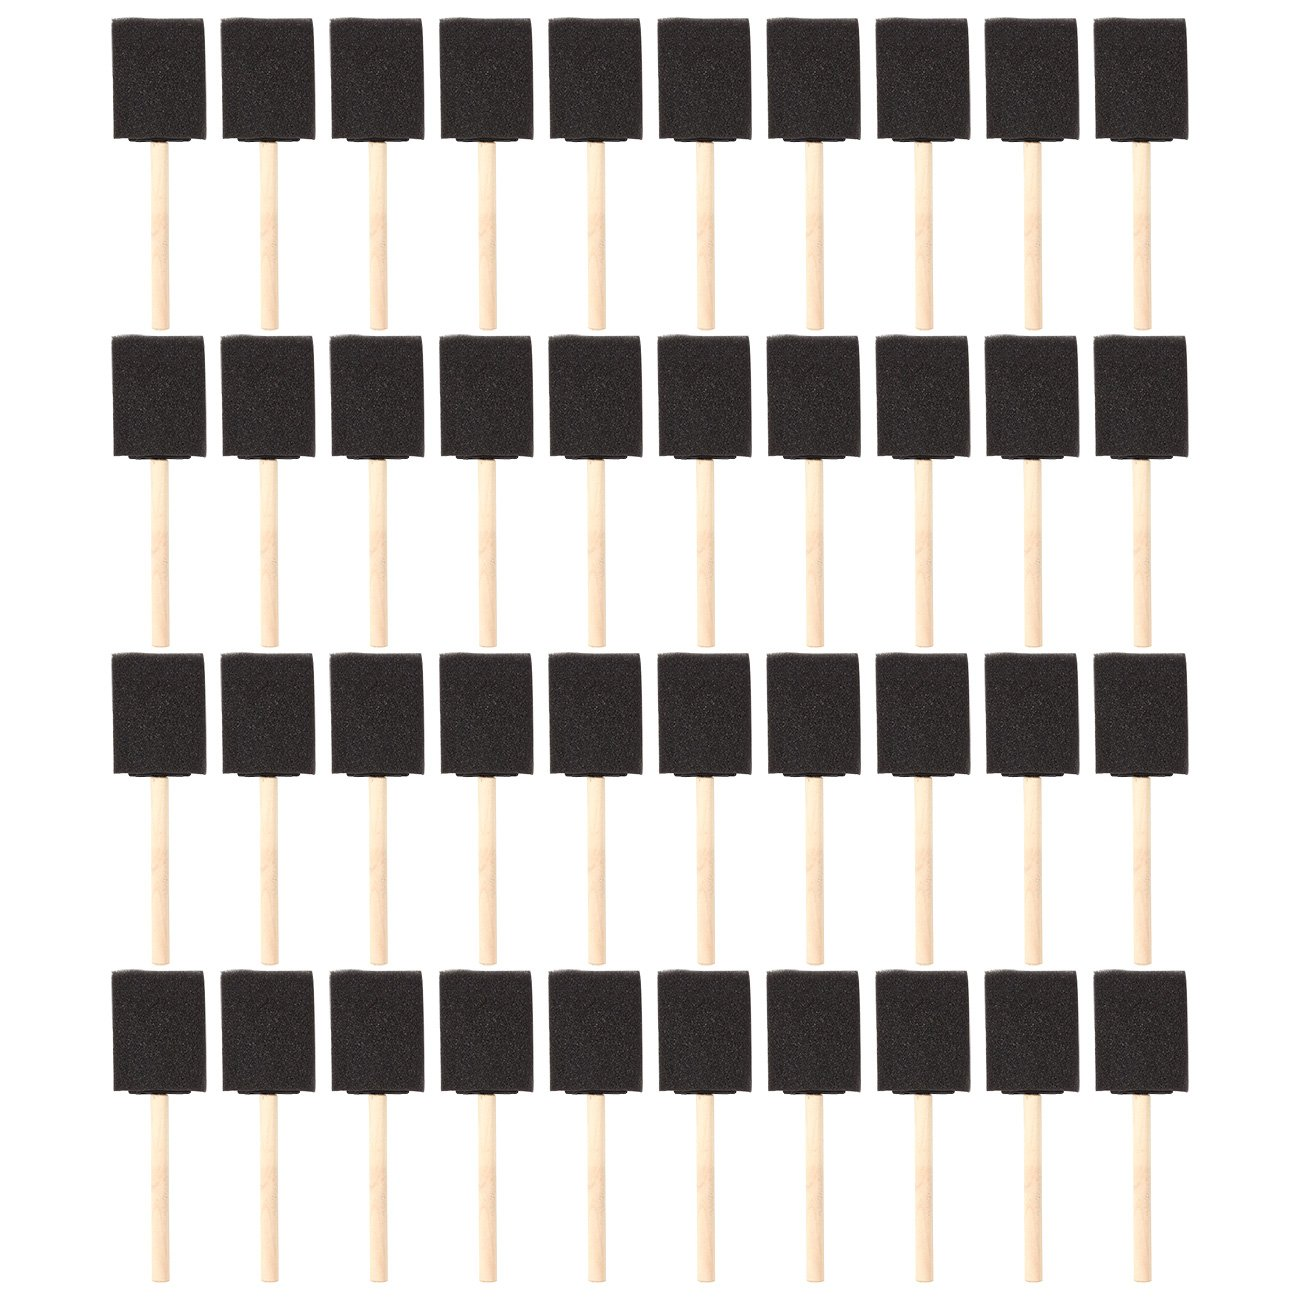 Pack of 40 Foam Paint Brush Set - Value Pack - Great for Acrylics, Stains, Varnishes, Crafts, Art, 2 Inch by Juvale